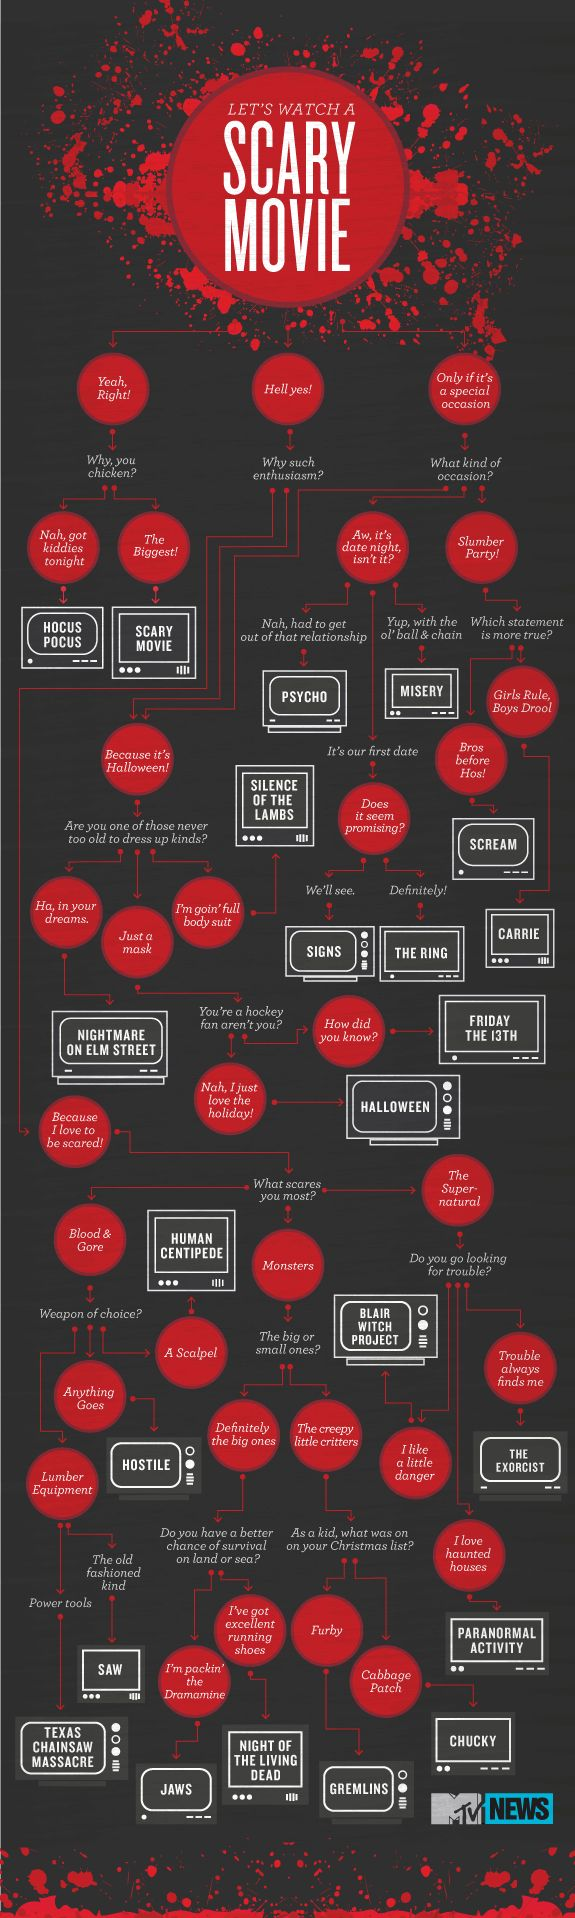 so many good #horror flicks - narrow it down with this great #infographic